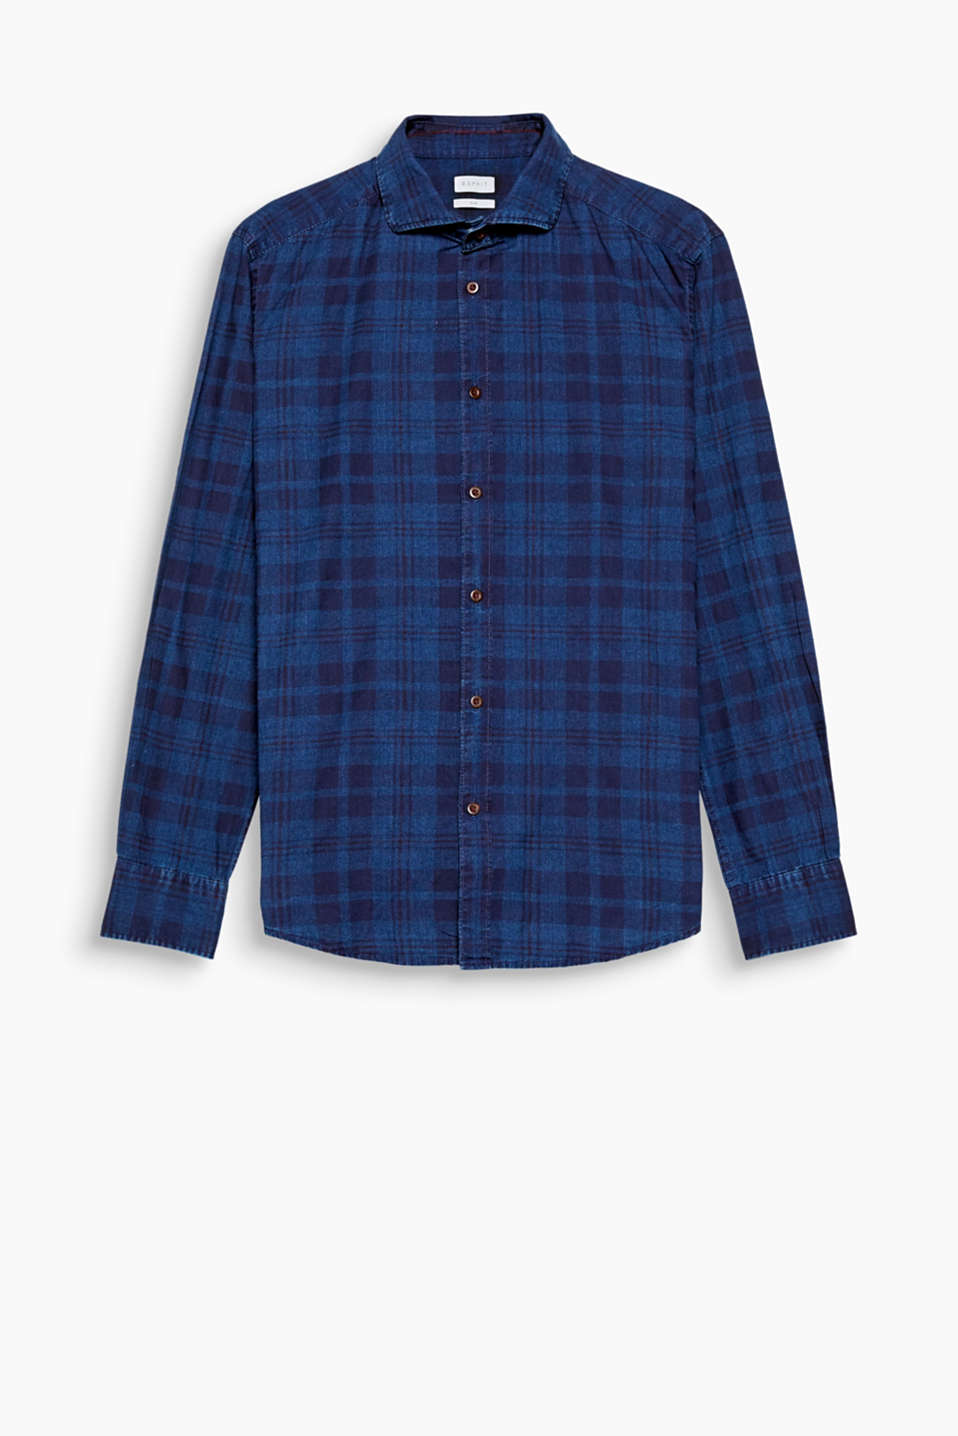 Denim and a tonal Glencheck pattern make this shirt an eye-catching urban, rustic piece